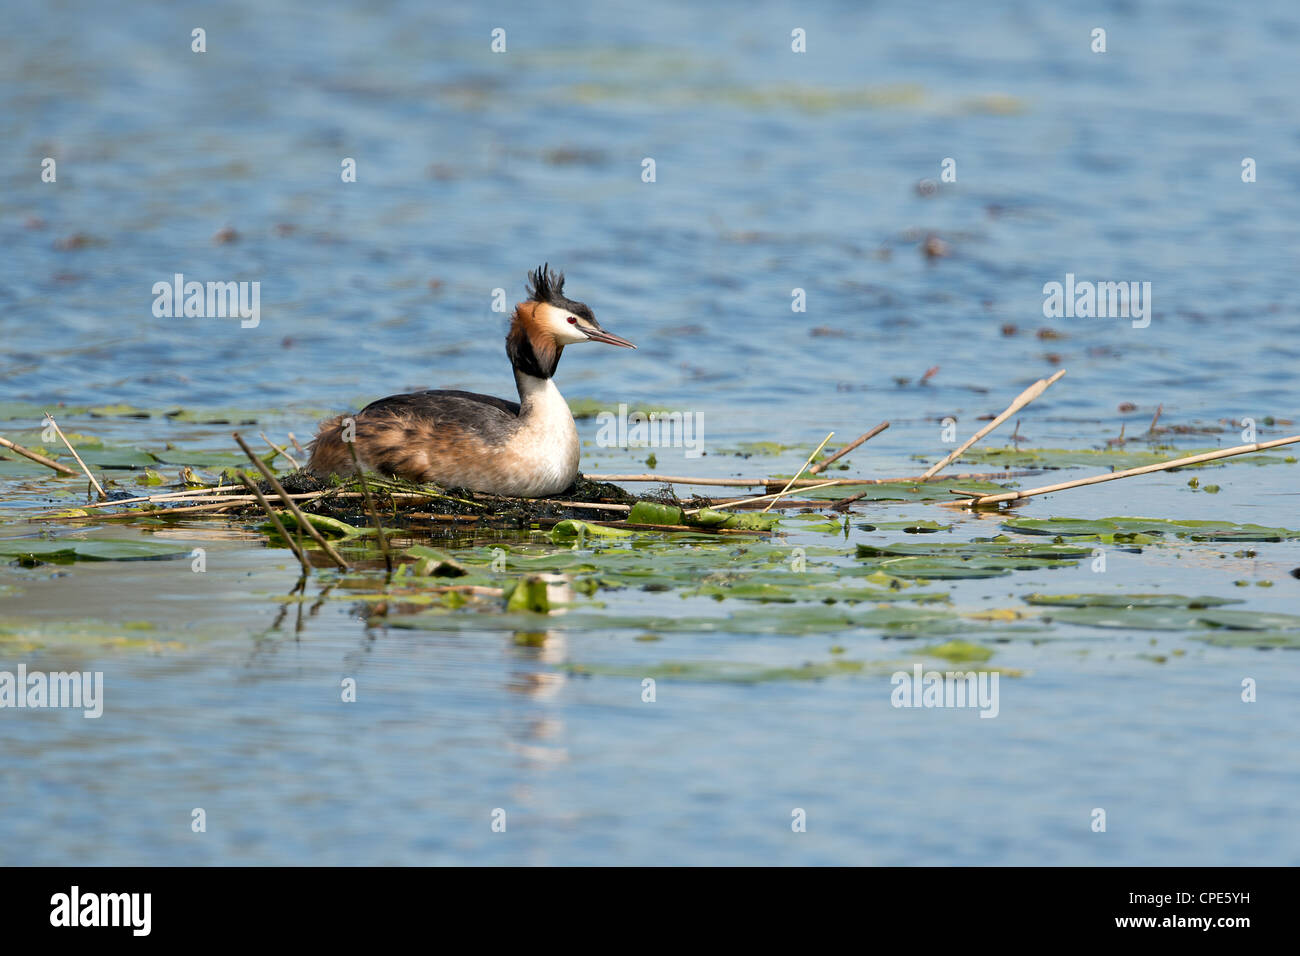 Great Crested Grebes at the nest - Stock Image